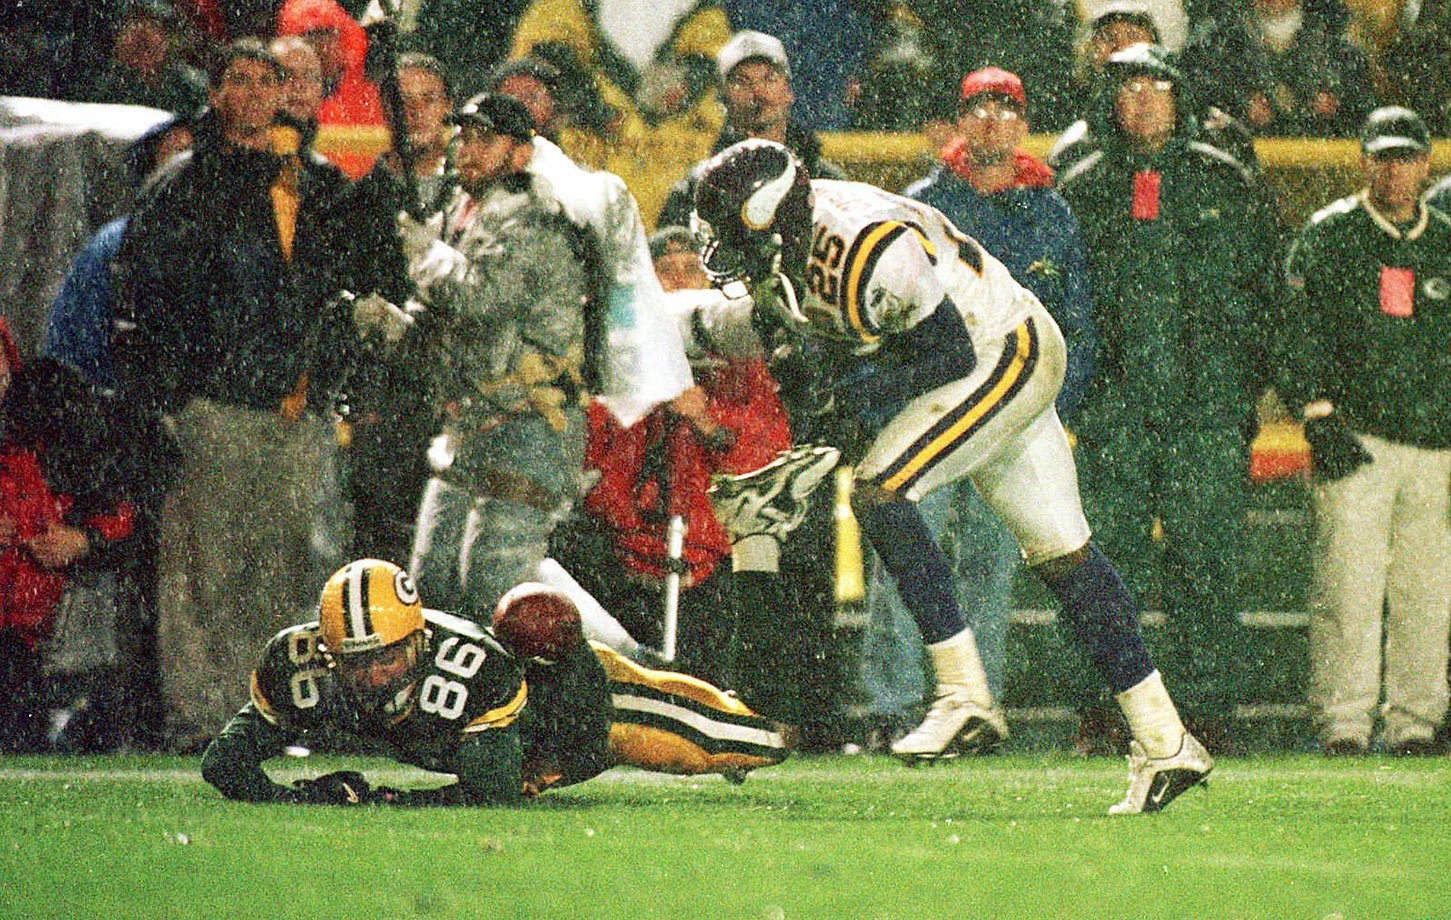 2000: Antonio Freeman's roll-over catch off a deflection by Vikings DB Chris Dishman. The grab resulted in 43-yard TD to beat Minnesota in overtime.